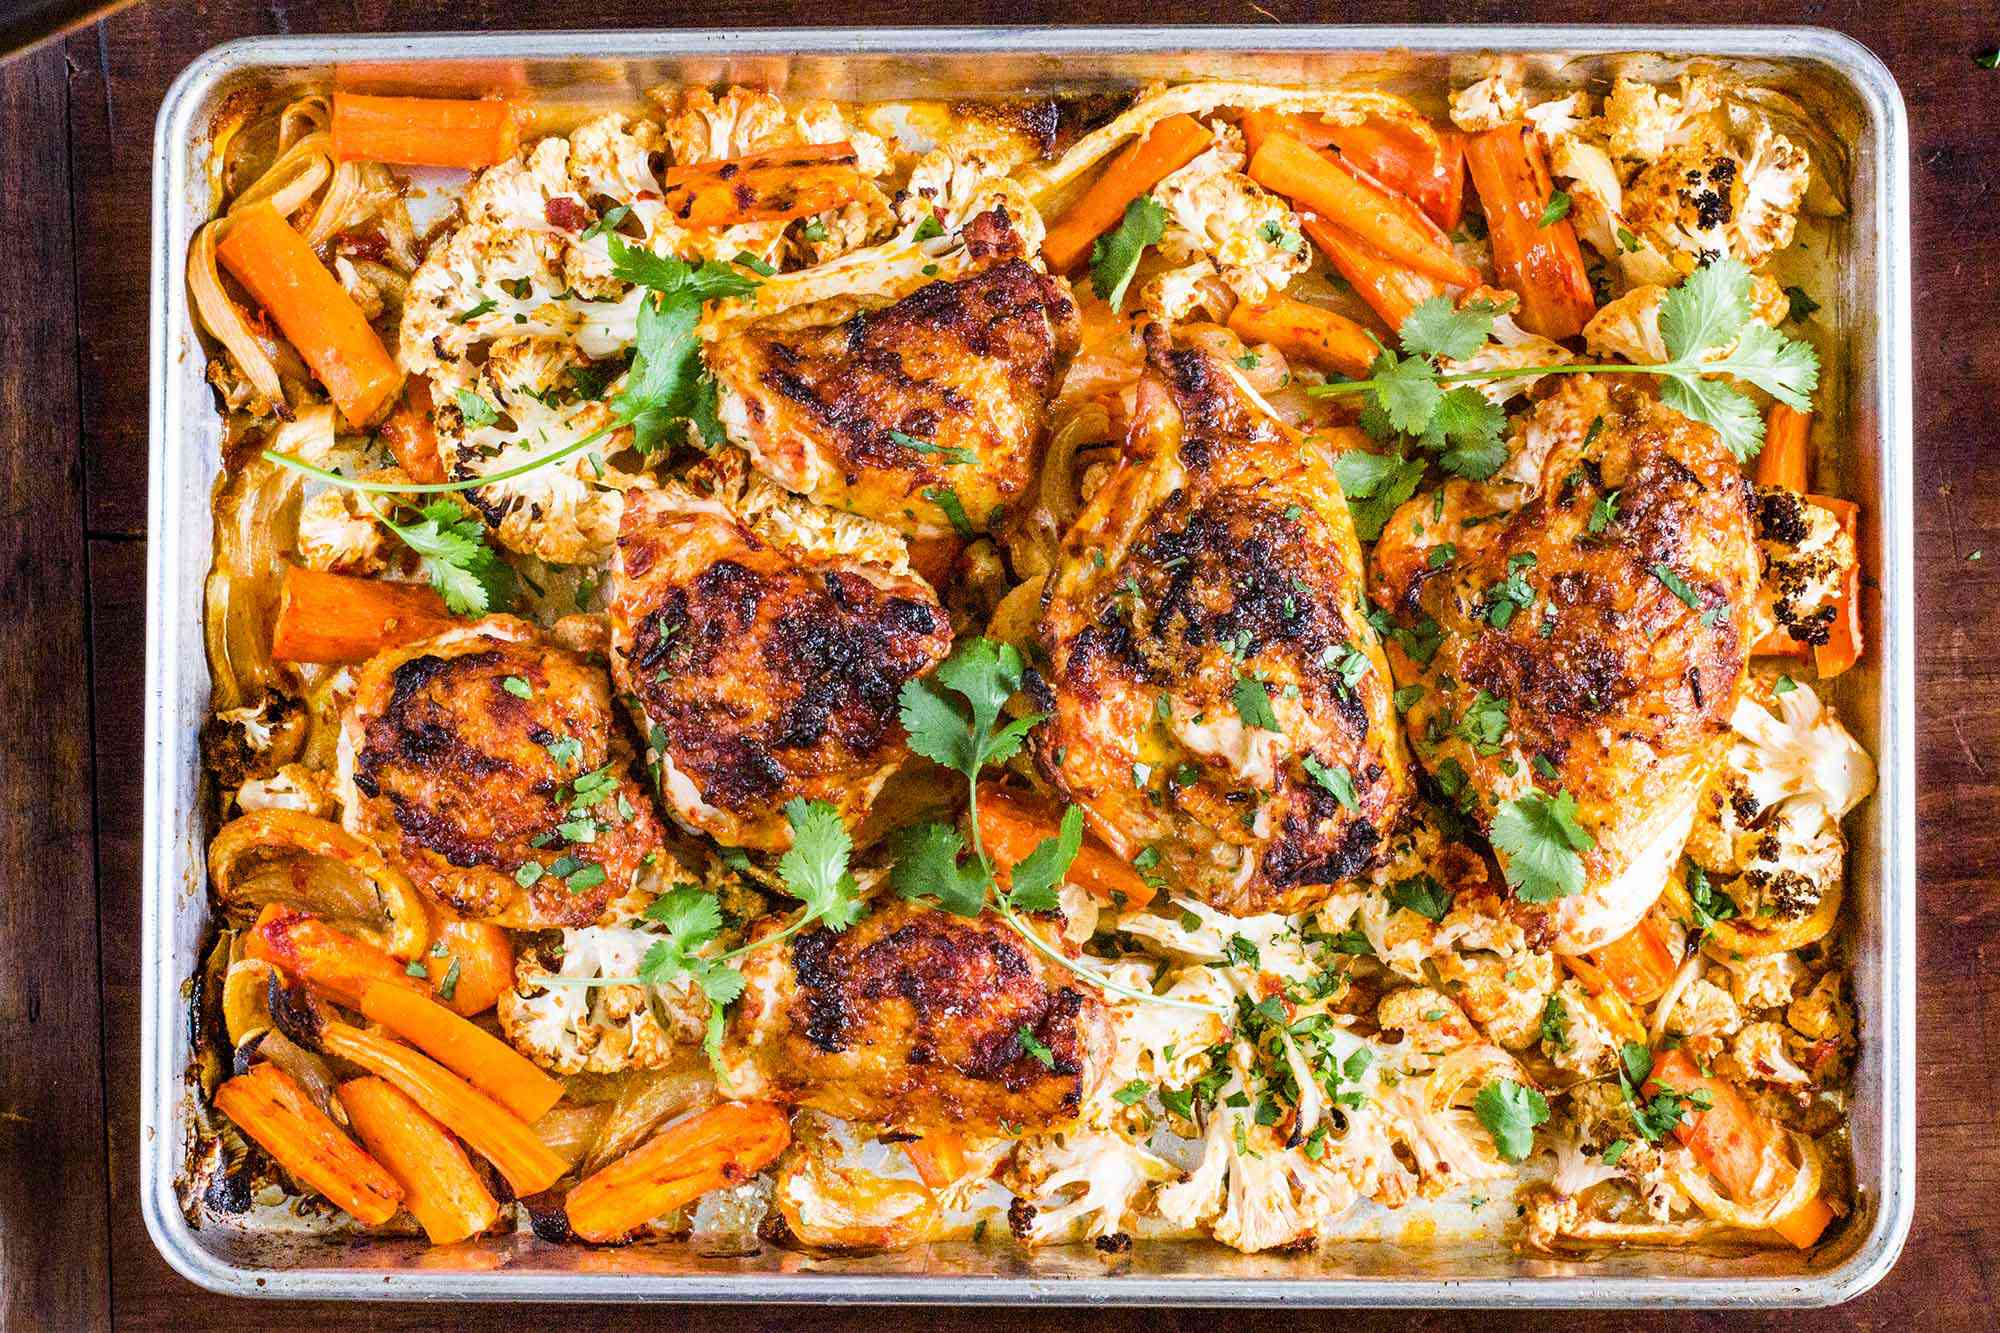 Sheet Pan Meal with Chicken